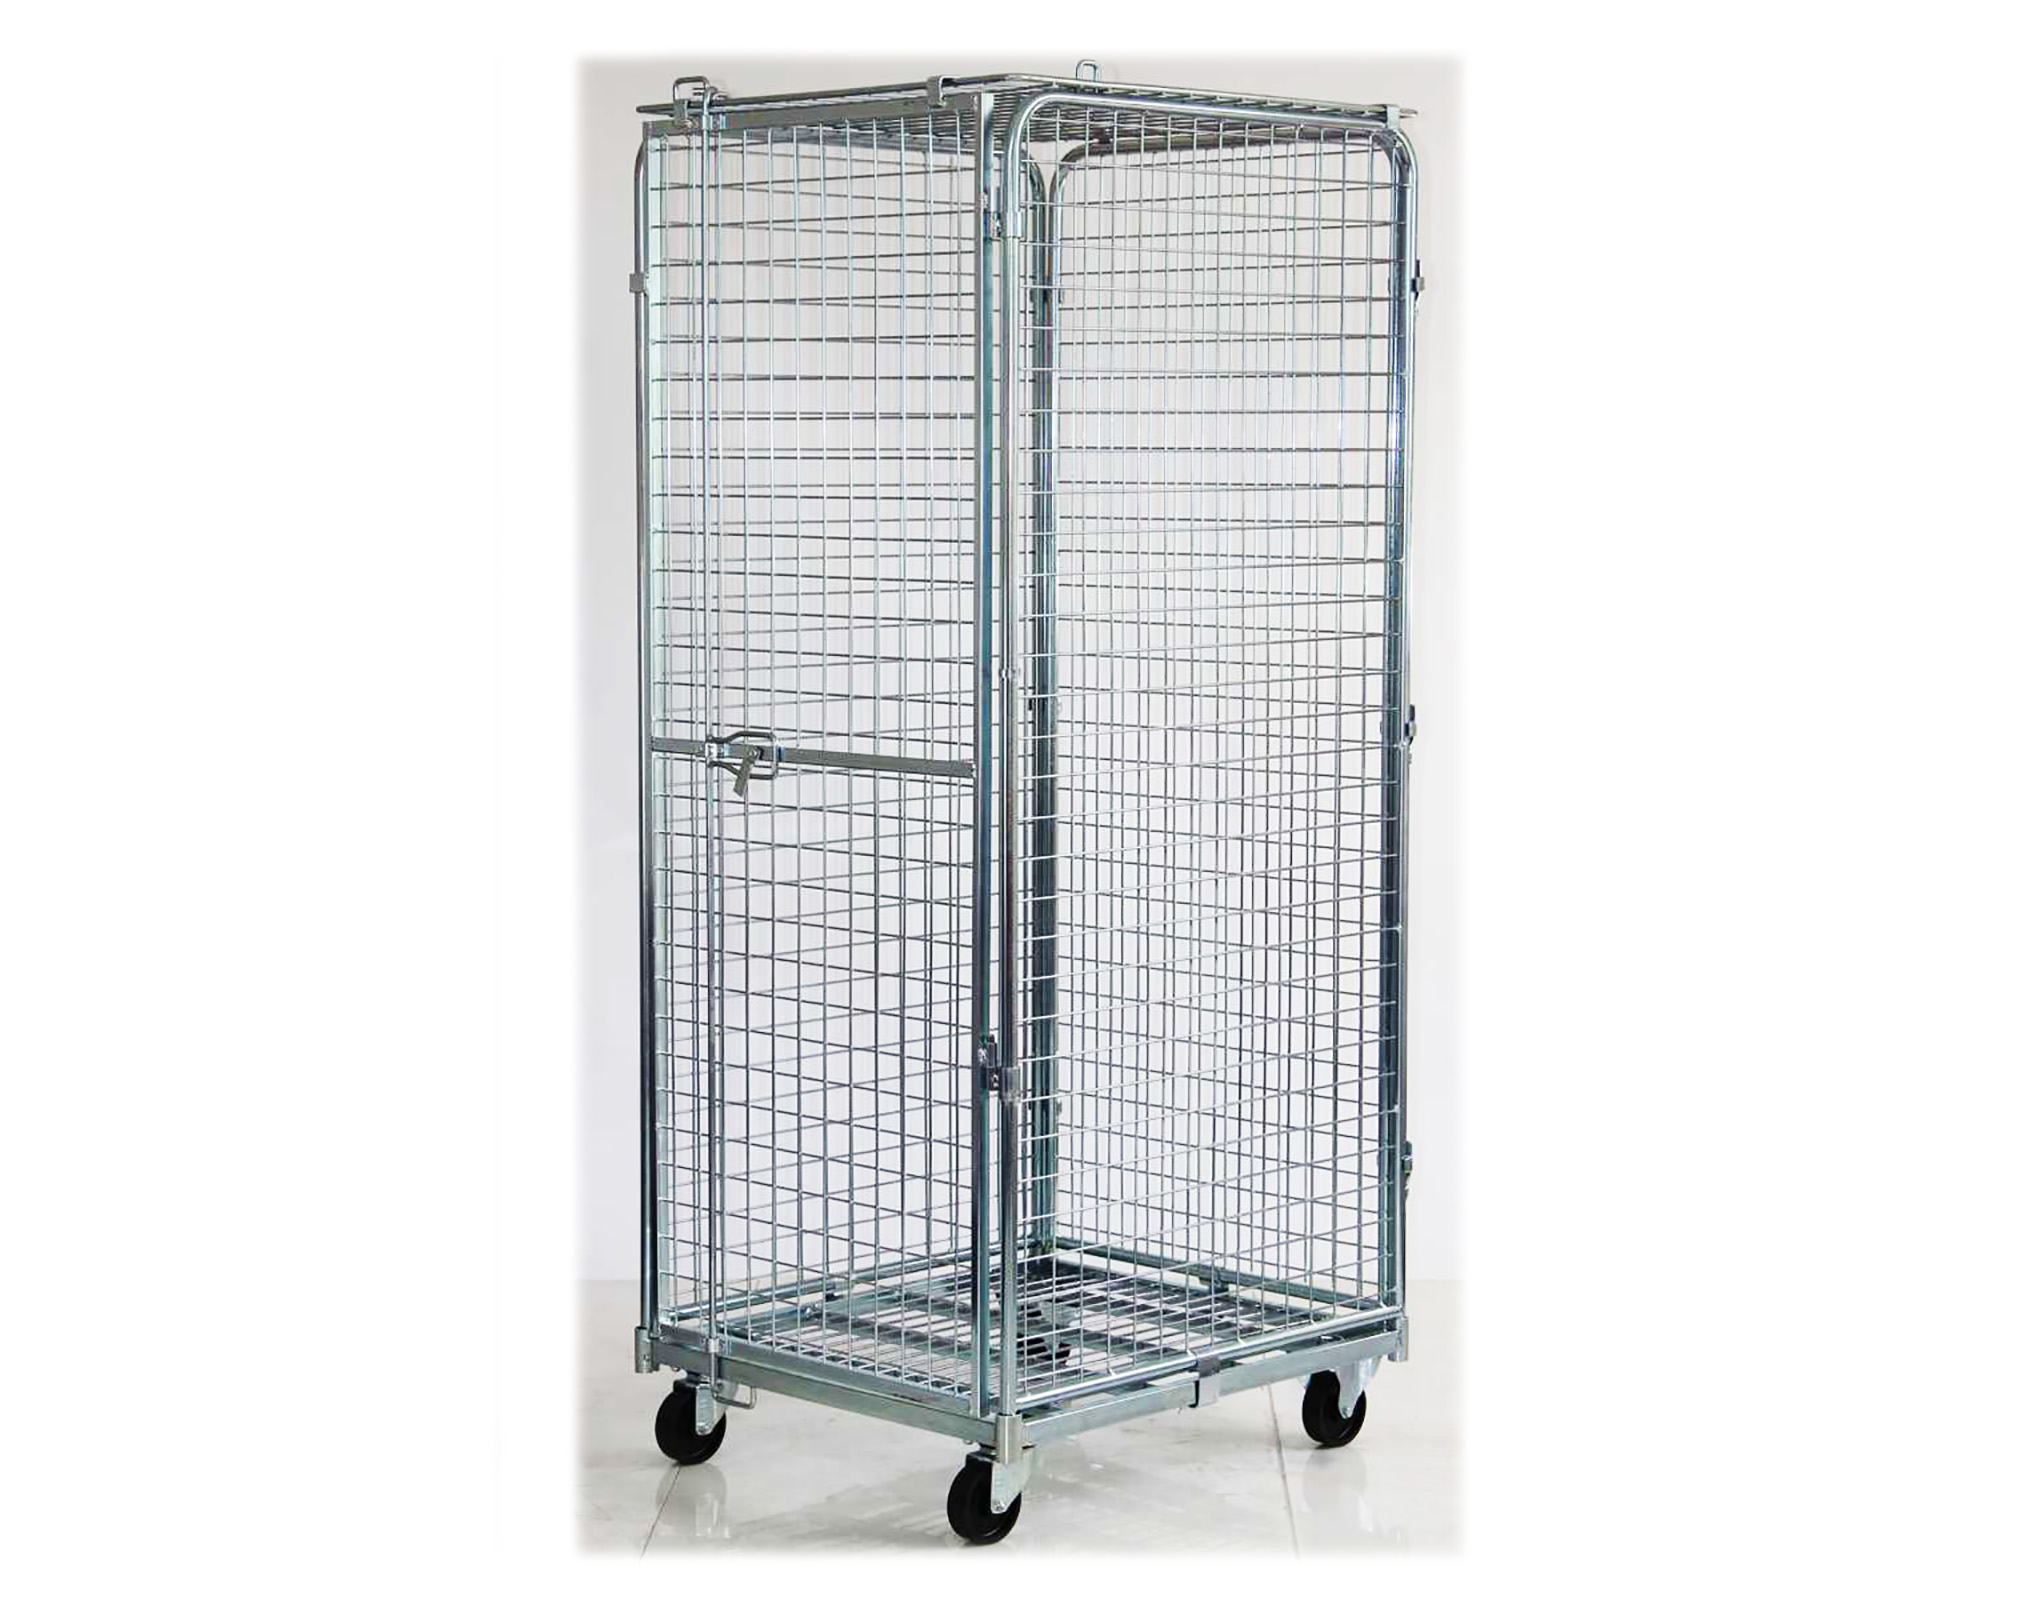 Full Security Roll Container Security Cages Direct